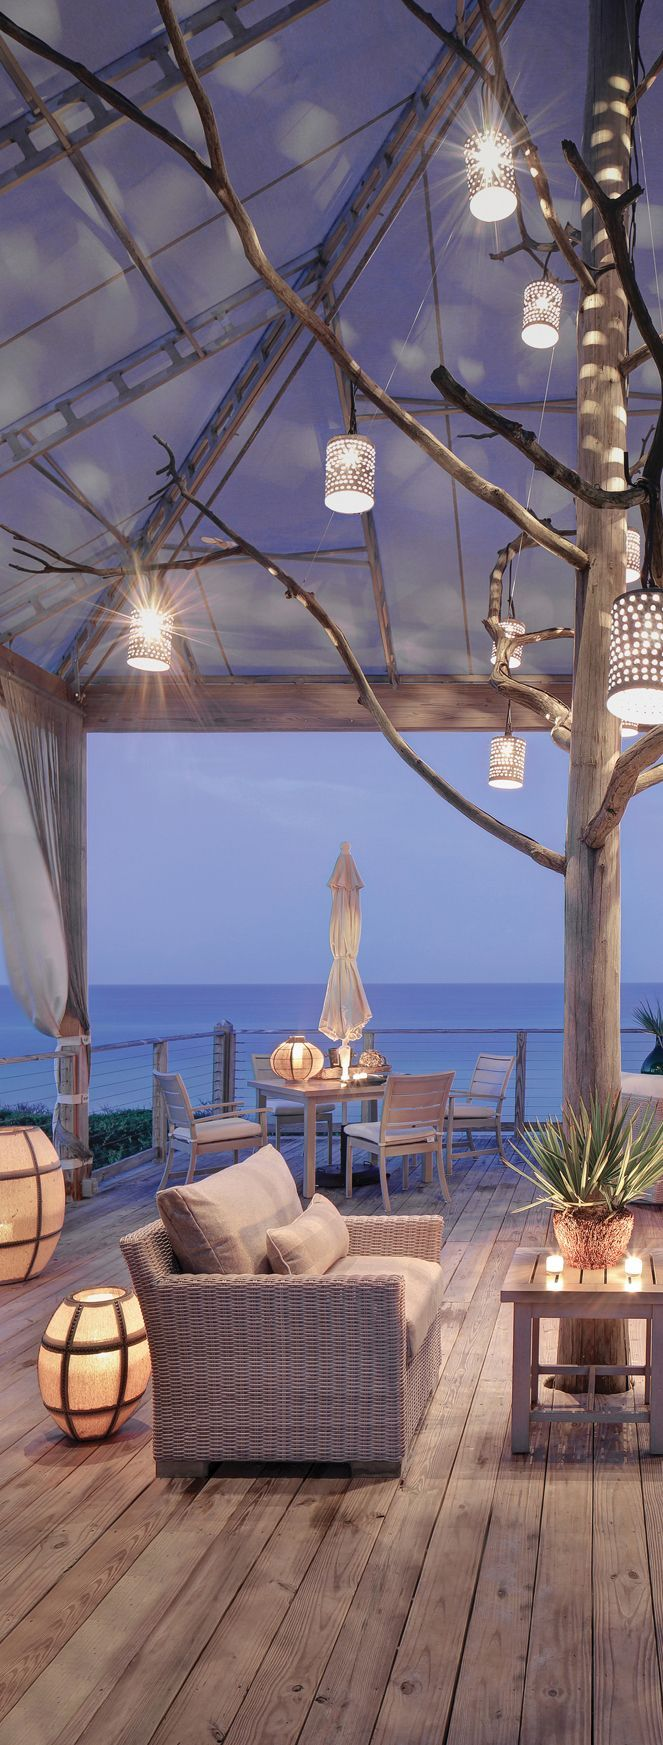 Outdoorliving Outdoor Seating Area Beach House Living Style Interior Decorating